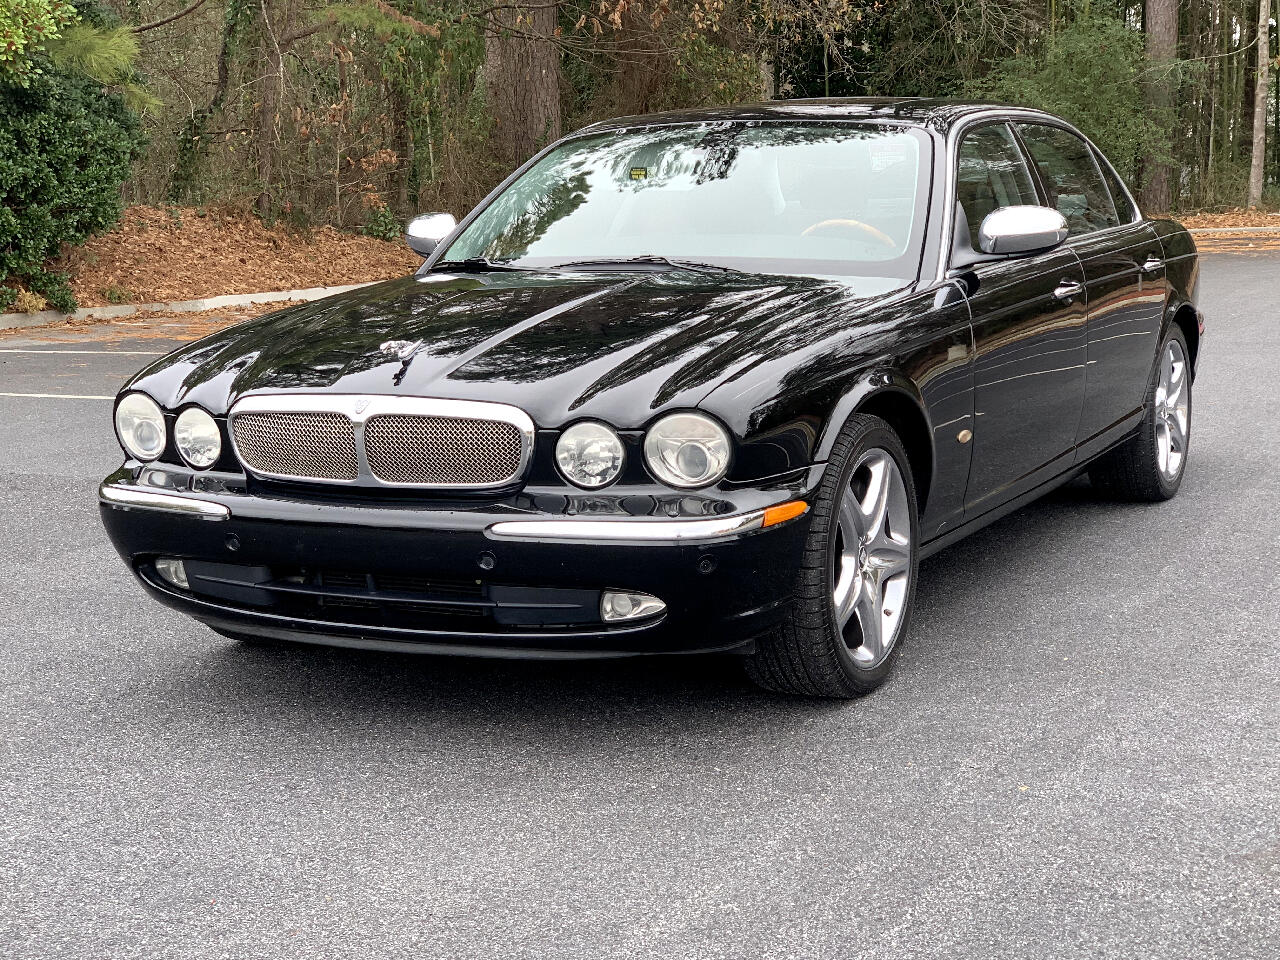 2006 Jaguar XJ-Series Super V8